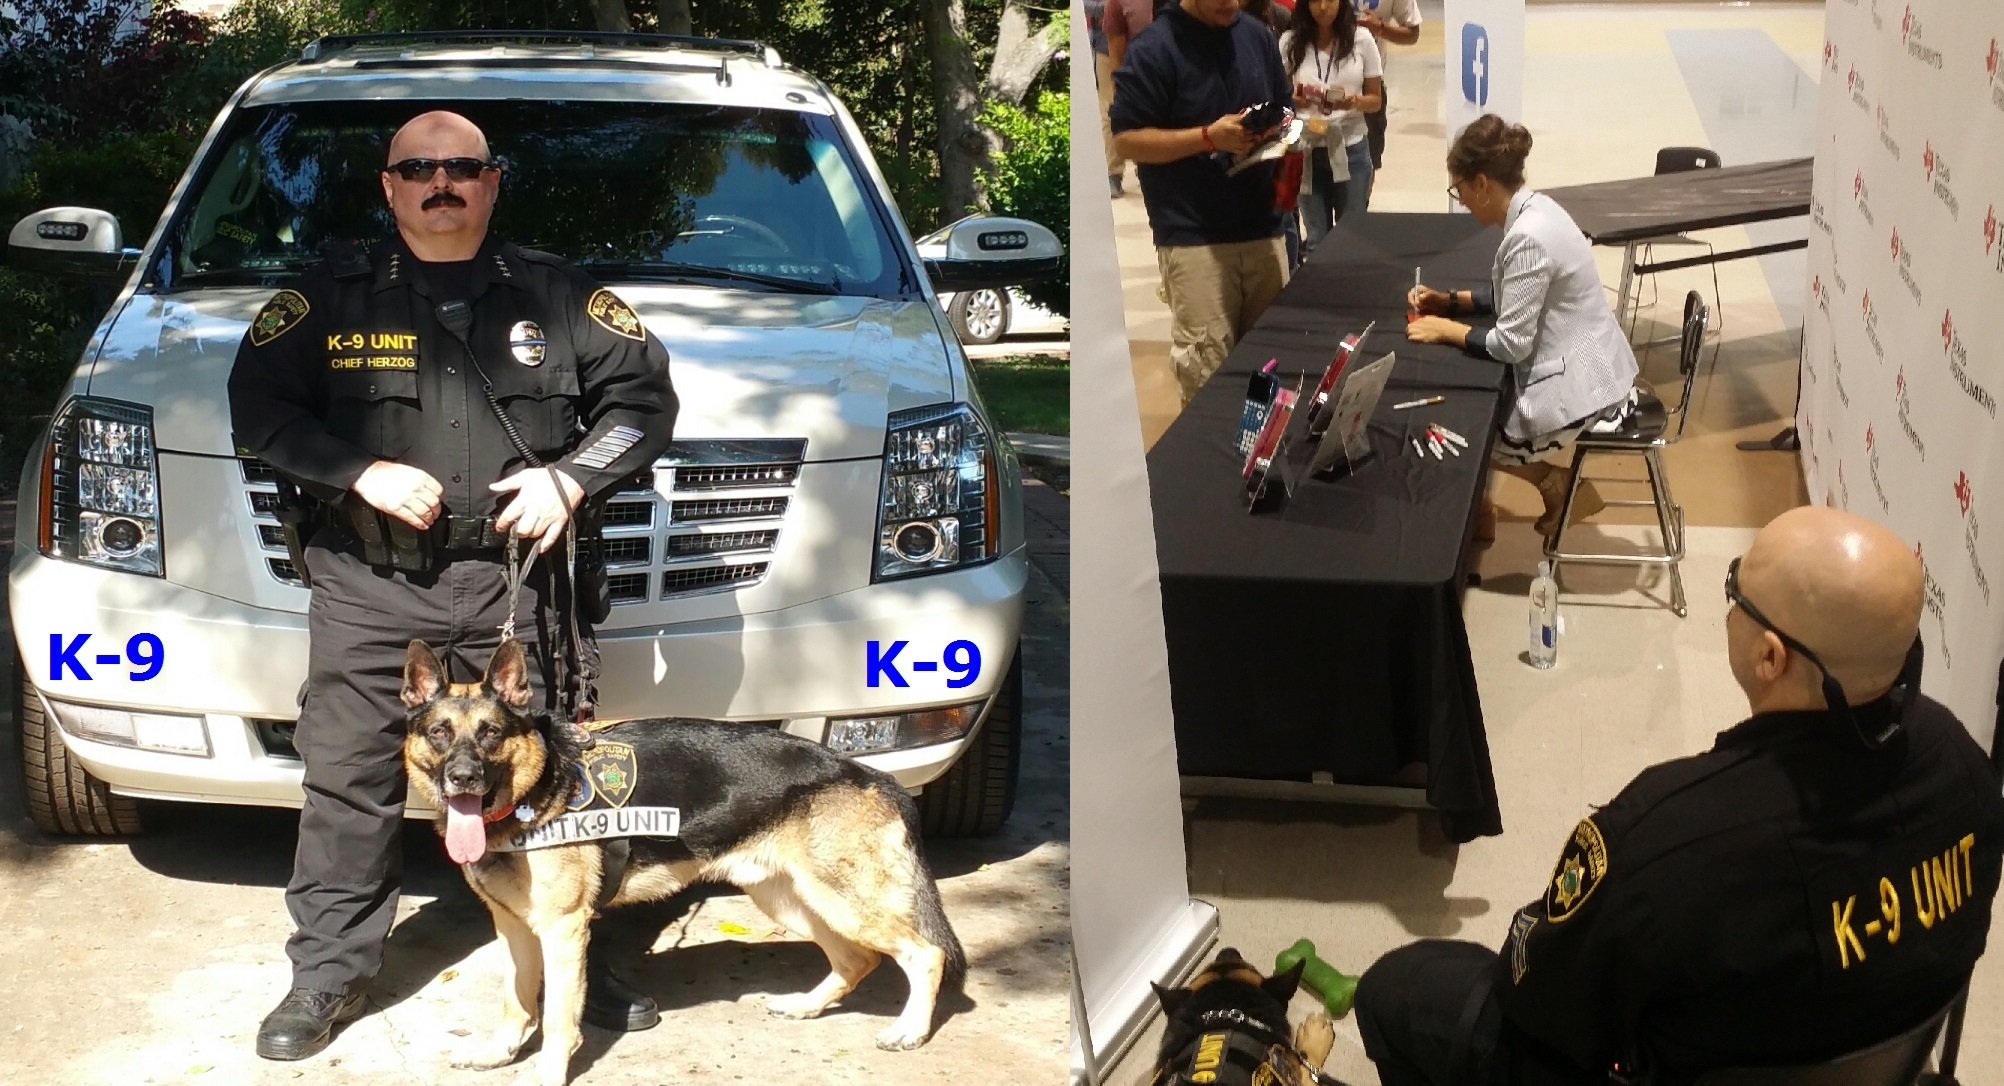 Kris and Bear Beverly Hills Bodyguards, The Bodyguard Group of Beverly Hills, California, 90210 K-9 unit for security